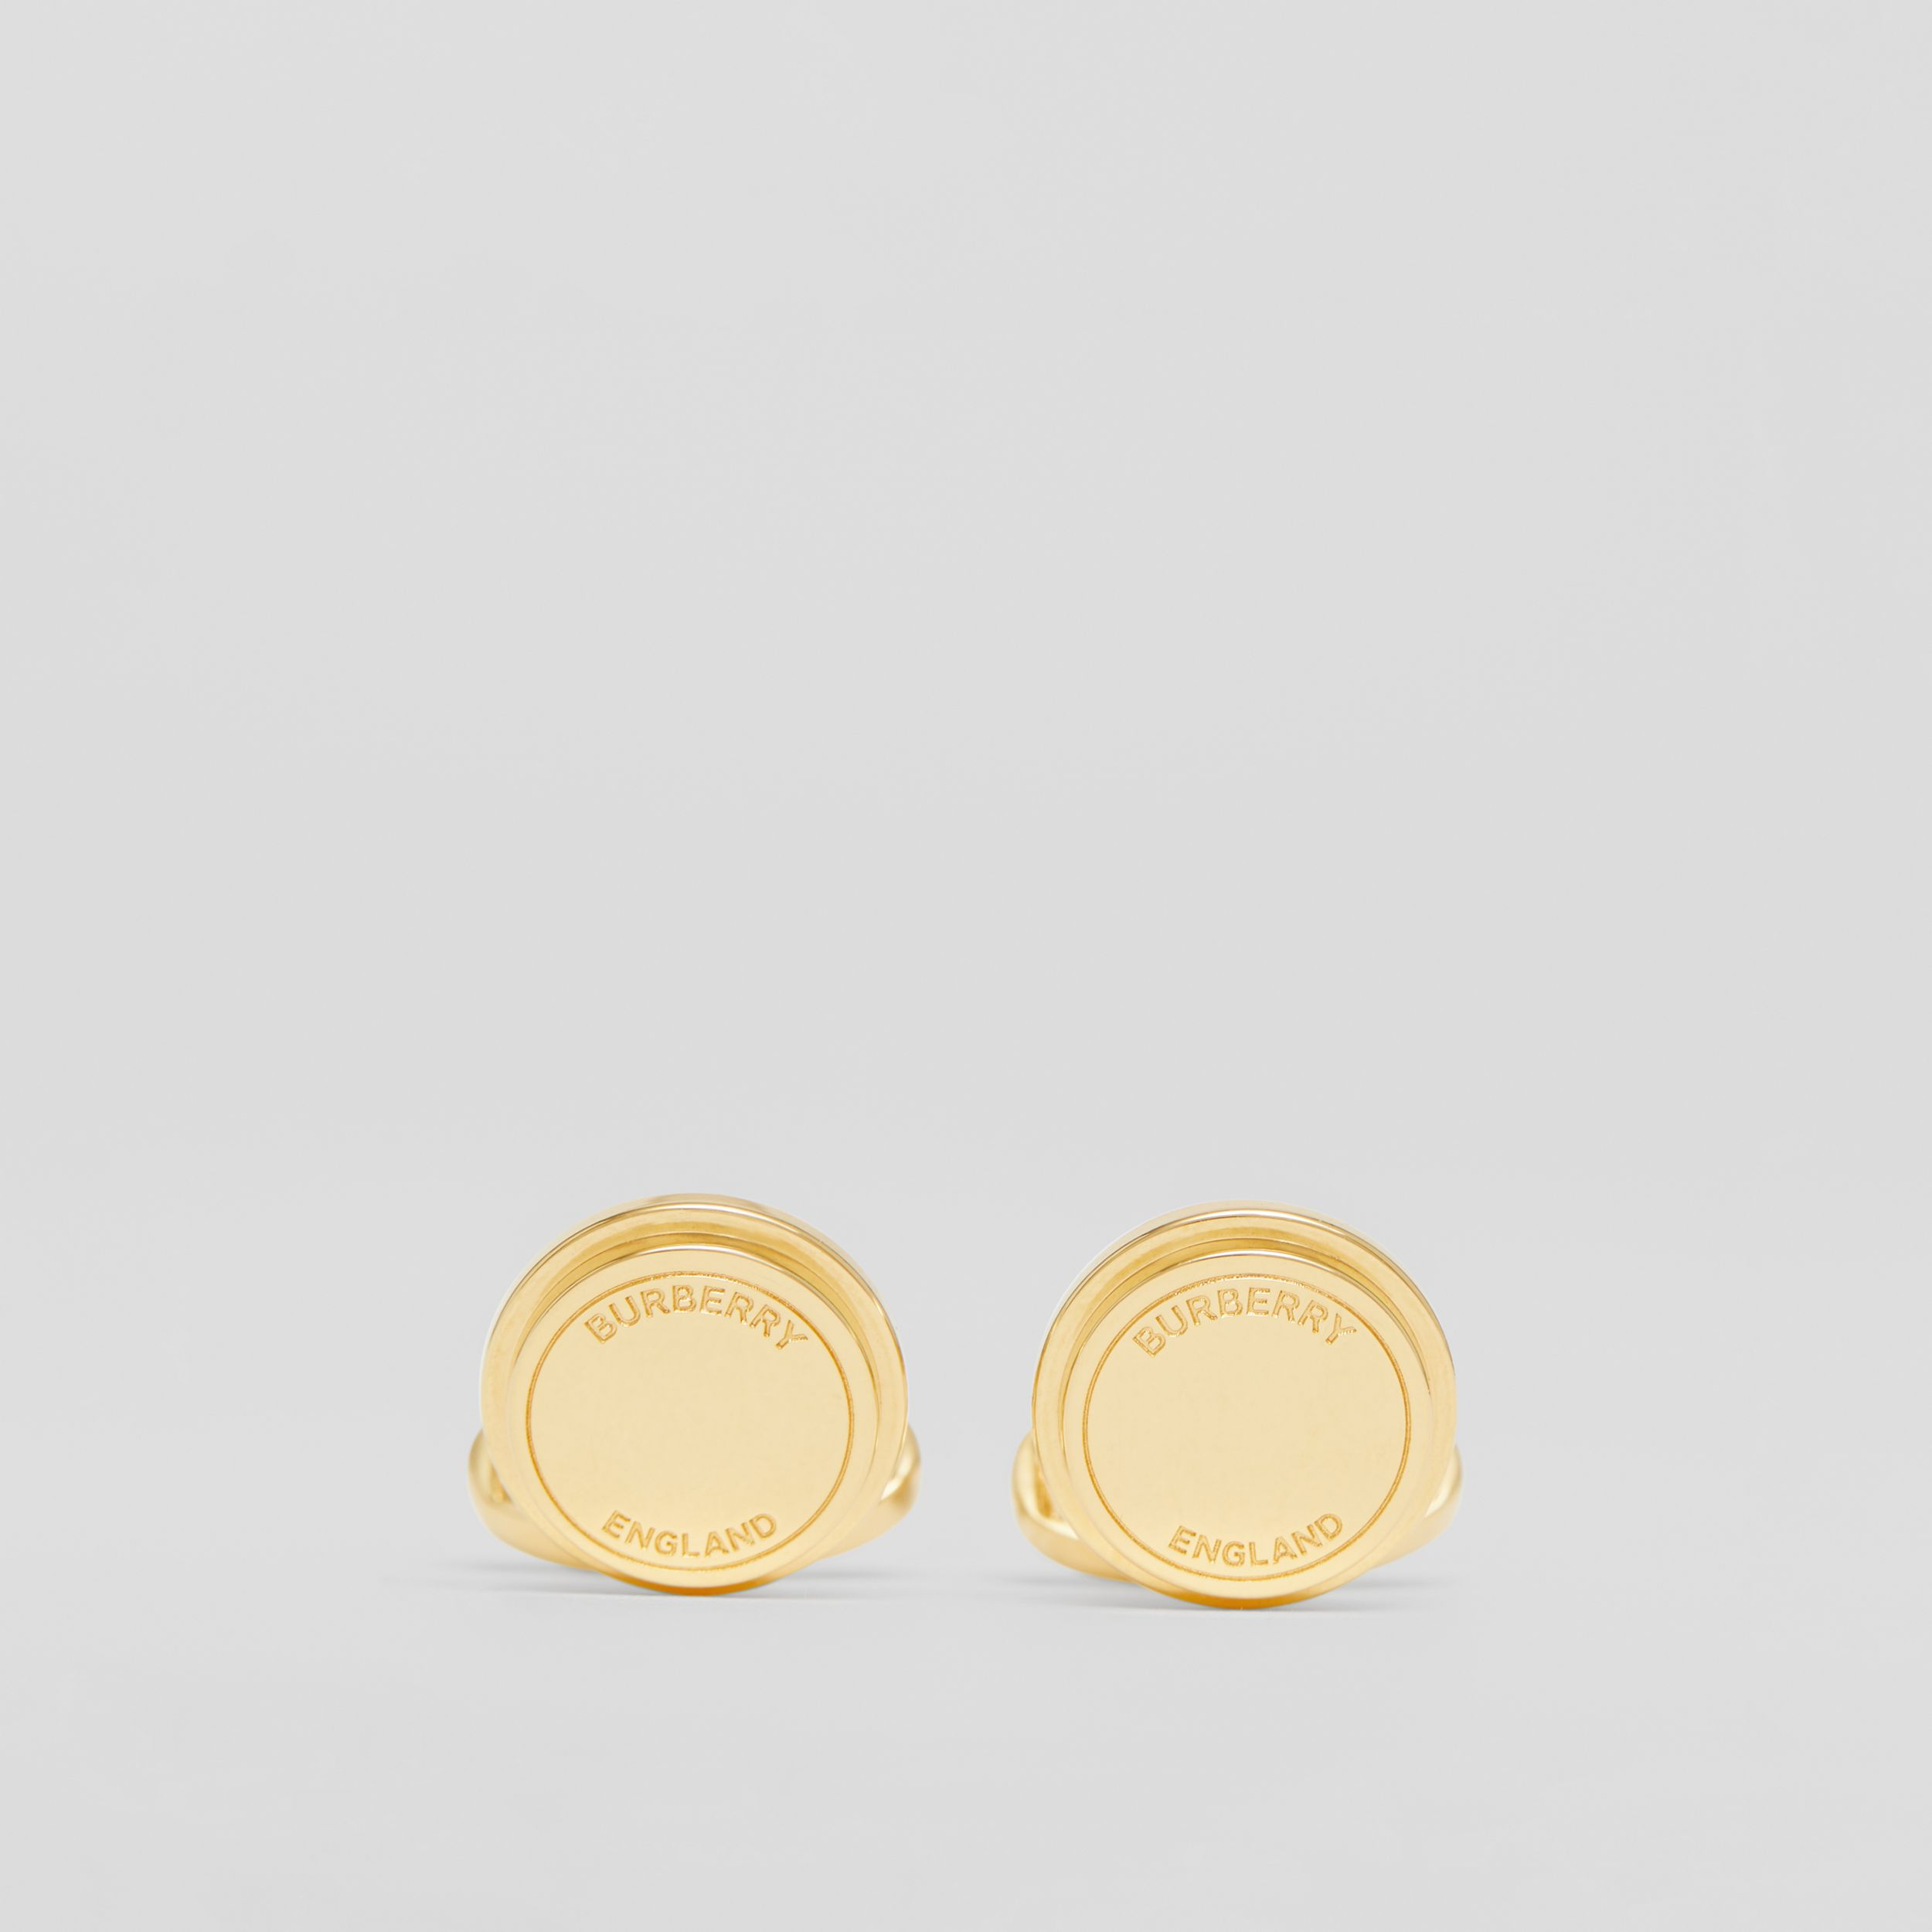 Engraved Gold-plated Cufflinks in Light - Men | Burberry Australia - 1